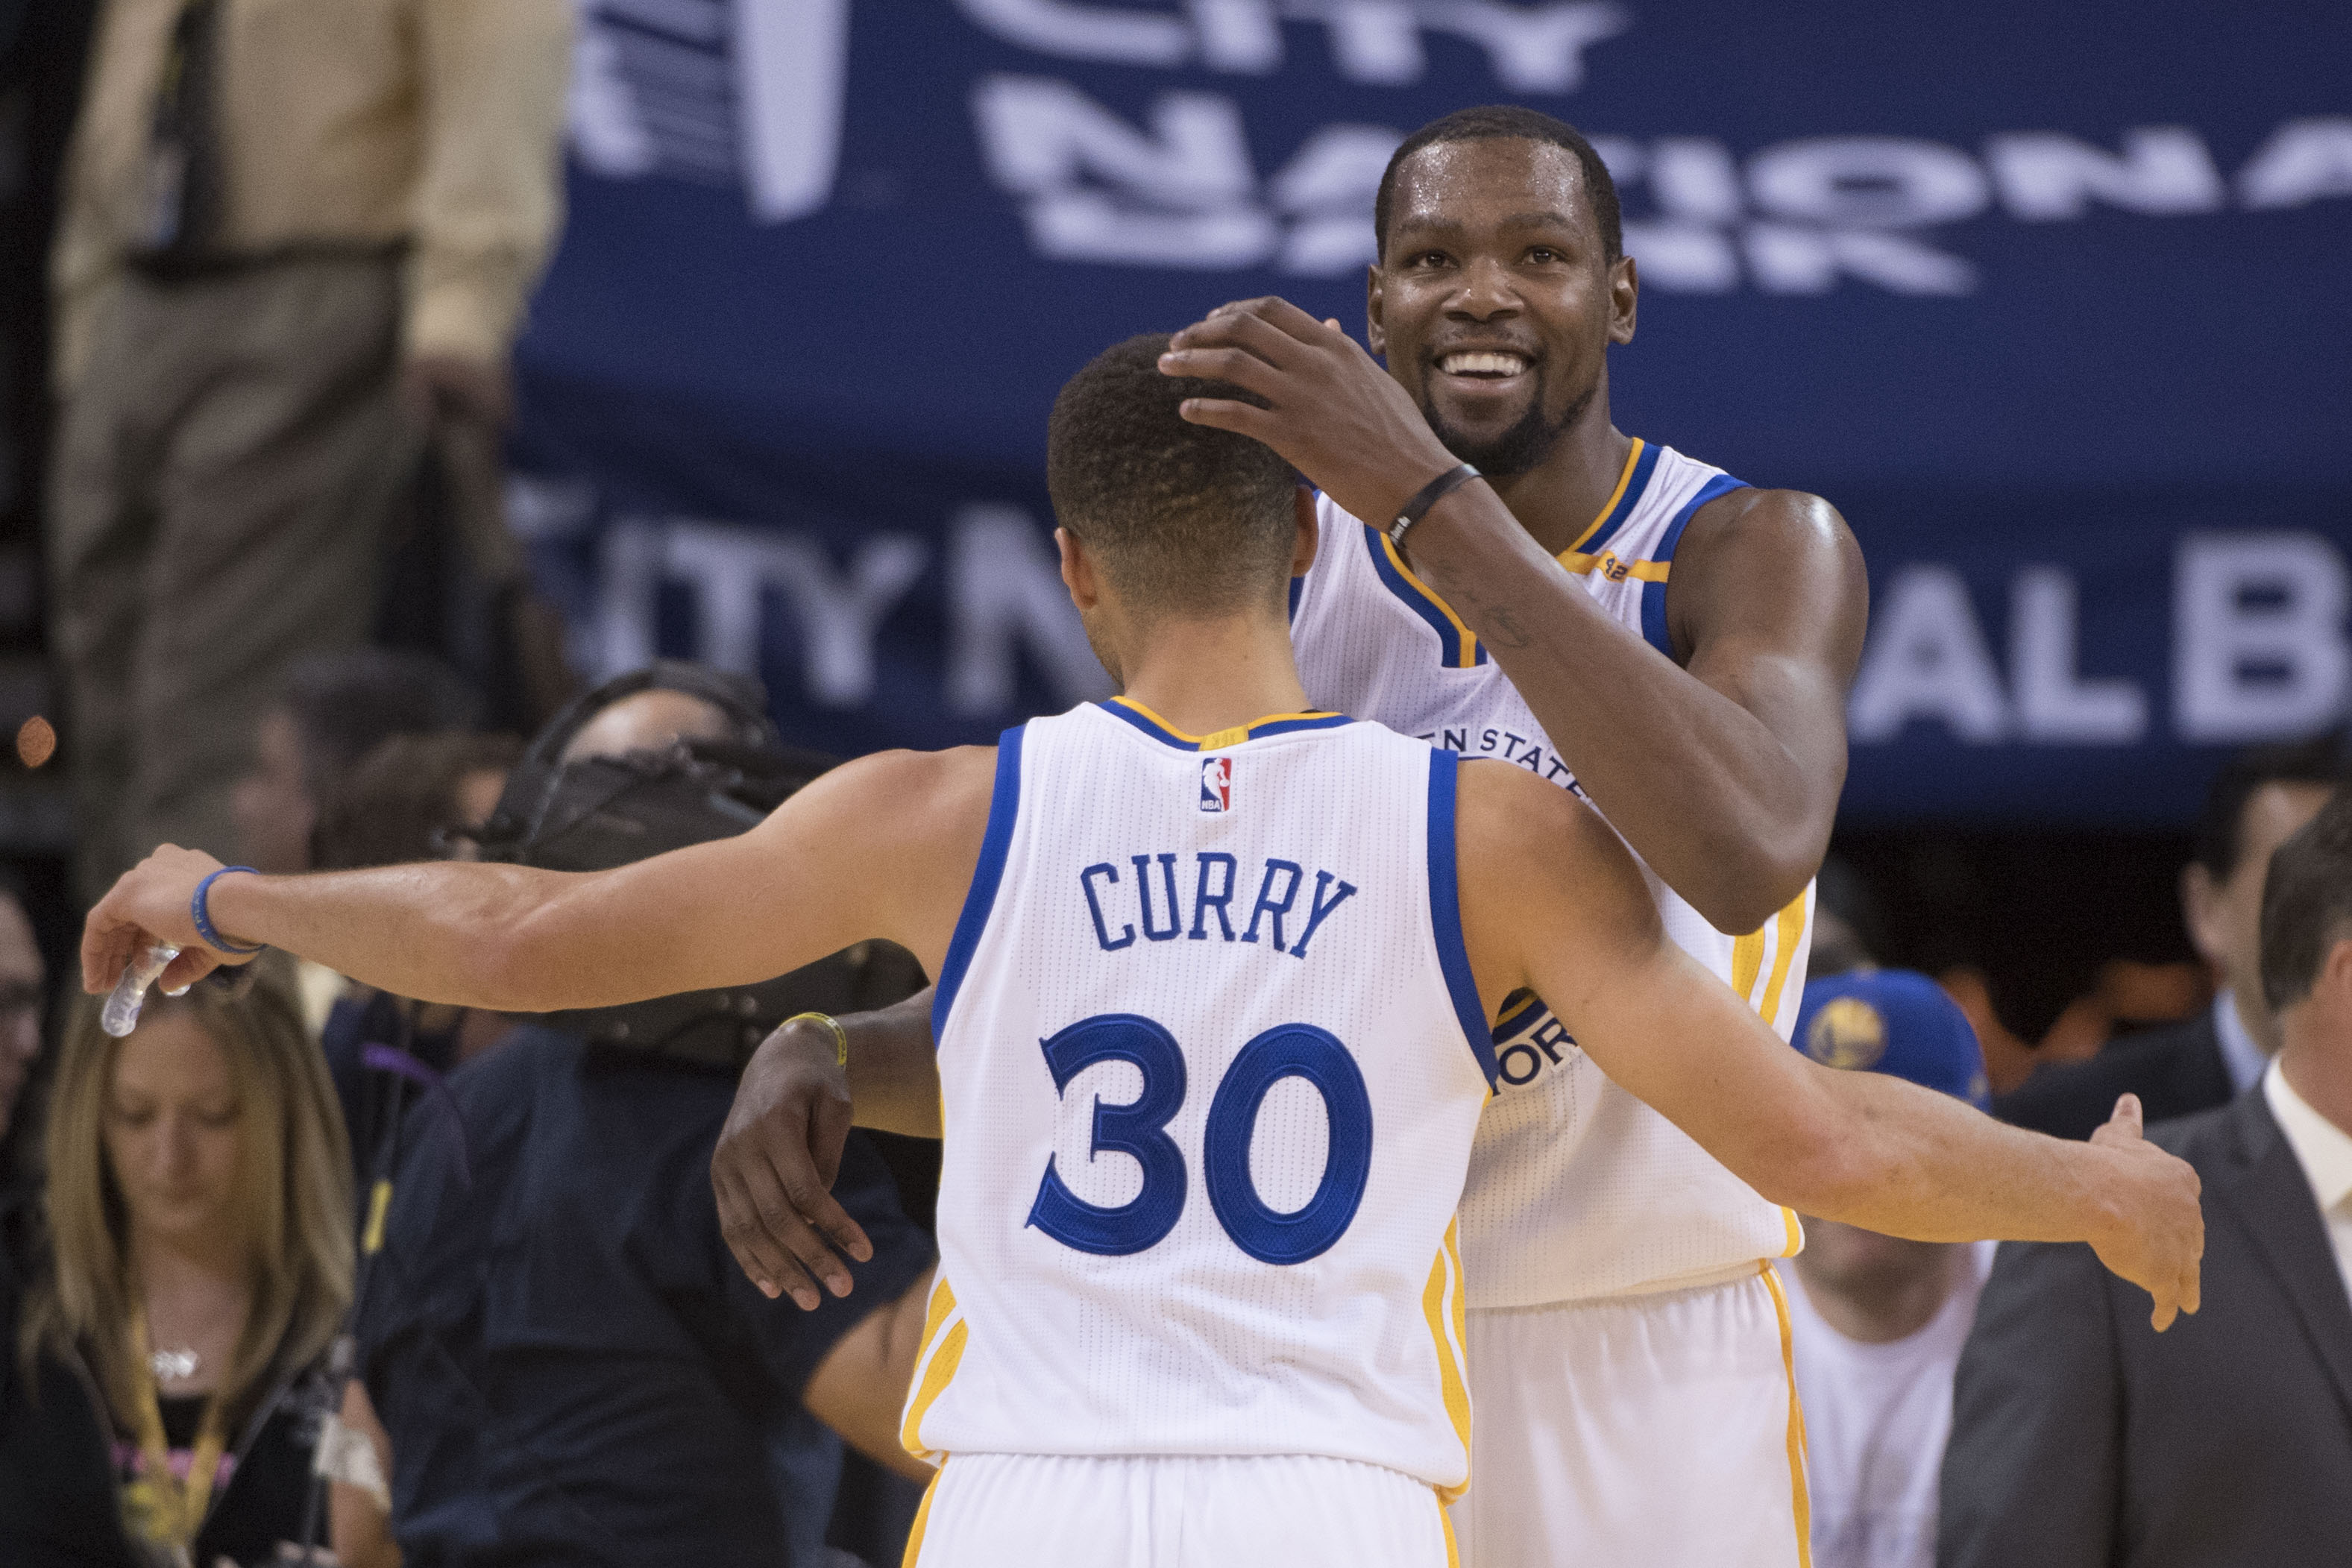 December 28, 2016; Oakland, CA, USA; Golden State Warriors forward Kevin Durant (35, right) hugs guard Stephen Curry (30) after the game against the Toronto Raptors at Oracle Arena. The Warriors defeated the Raptors 121-111. Mandatory Credit: Kyle Terada-USA TODAY Sports